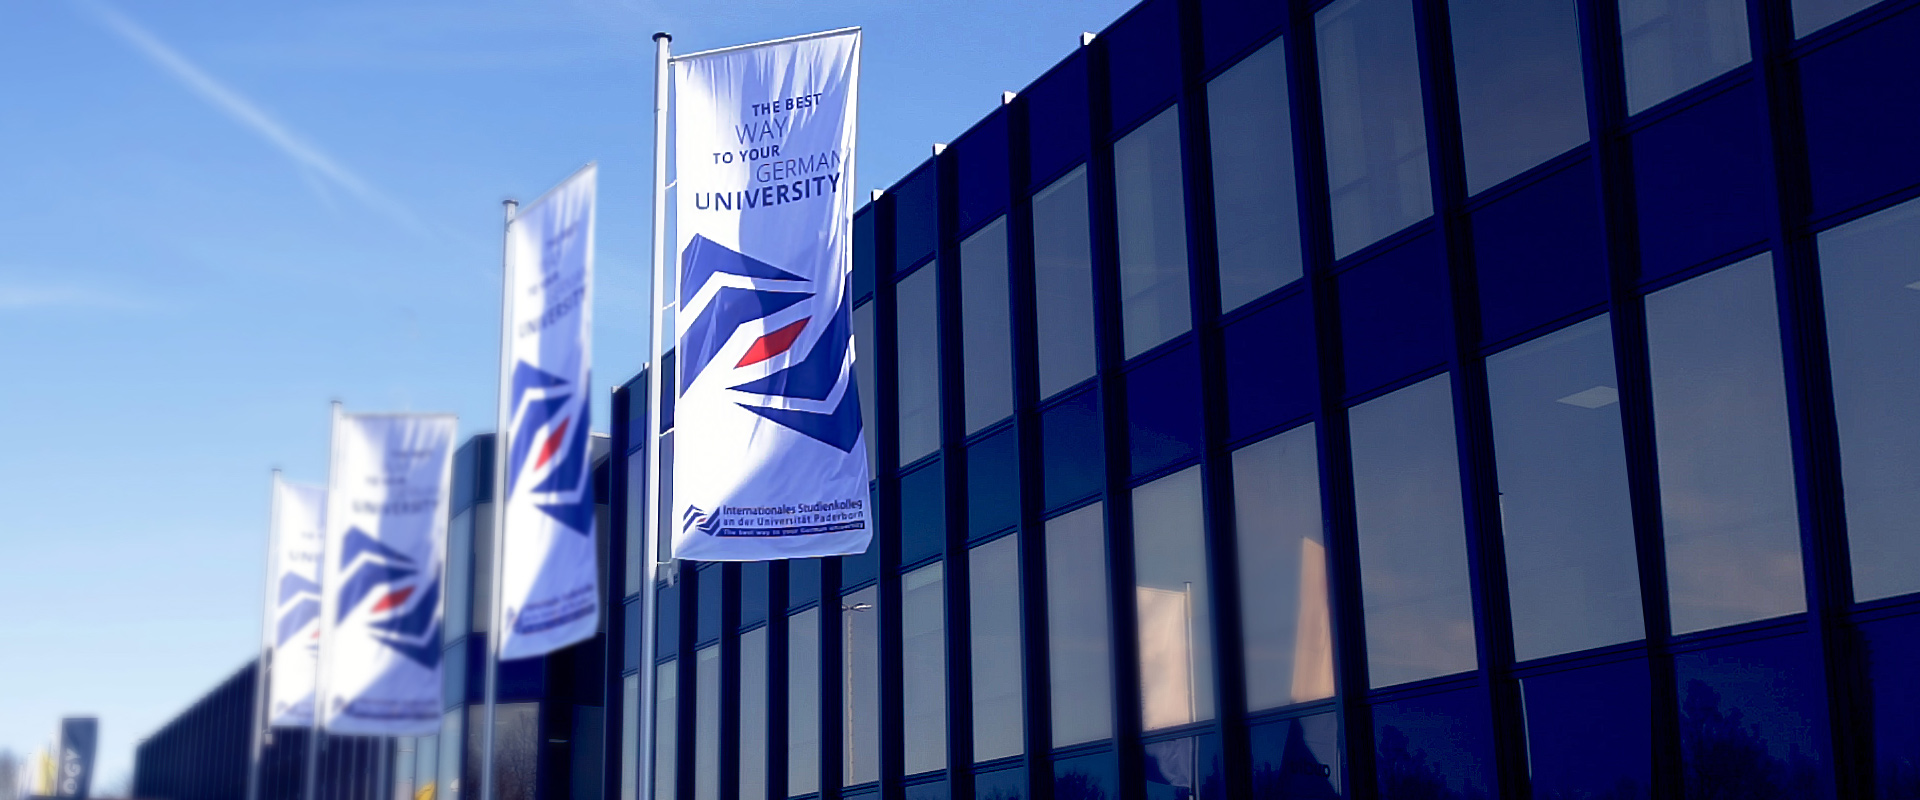 Internationales Studienkolleg an der Universität Paderborn